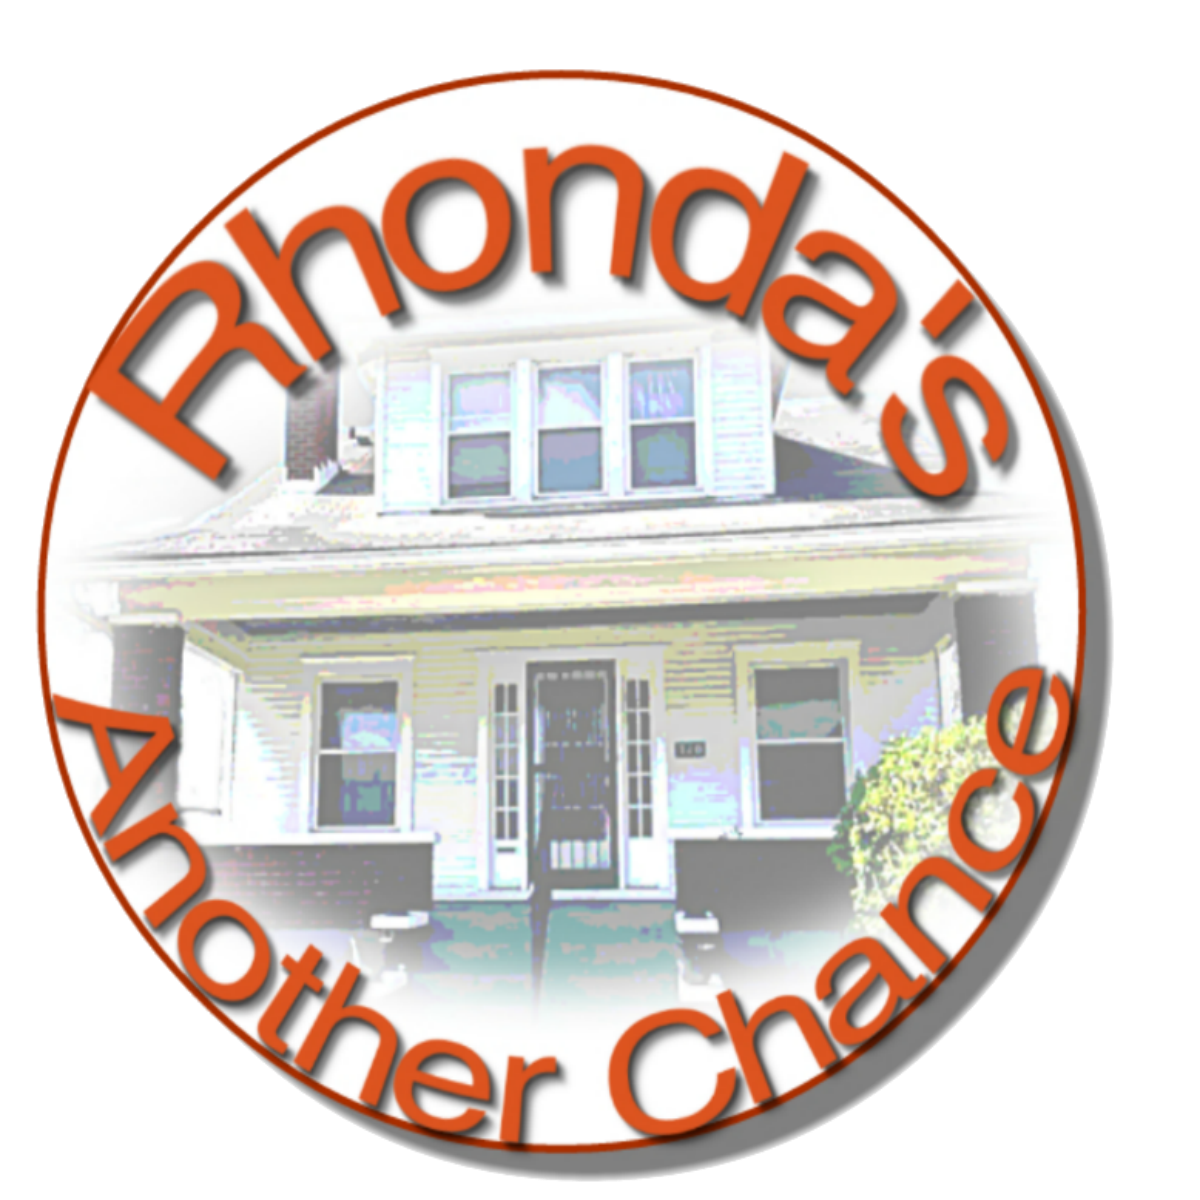 Rhonda's Another Chance, Inc.